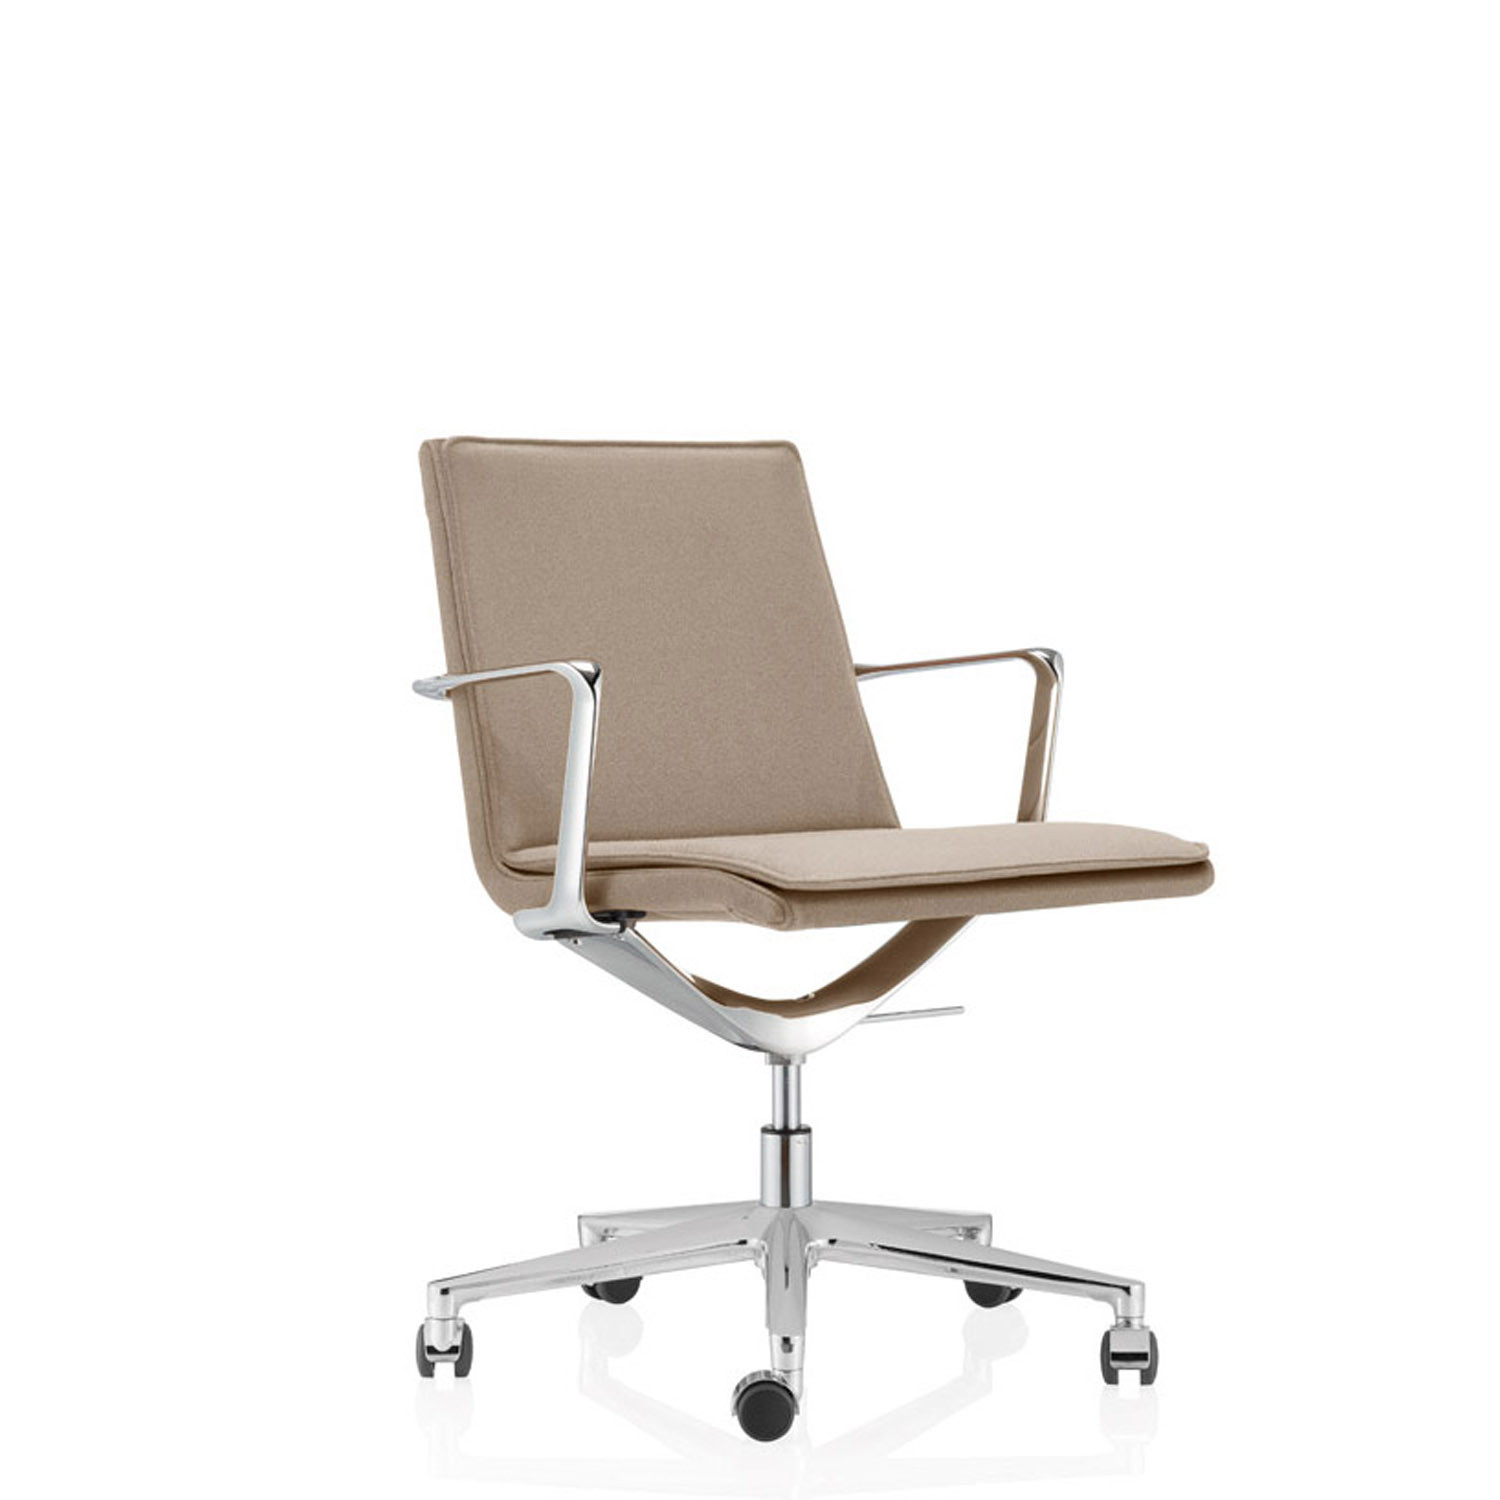 Valea Low Back Chair